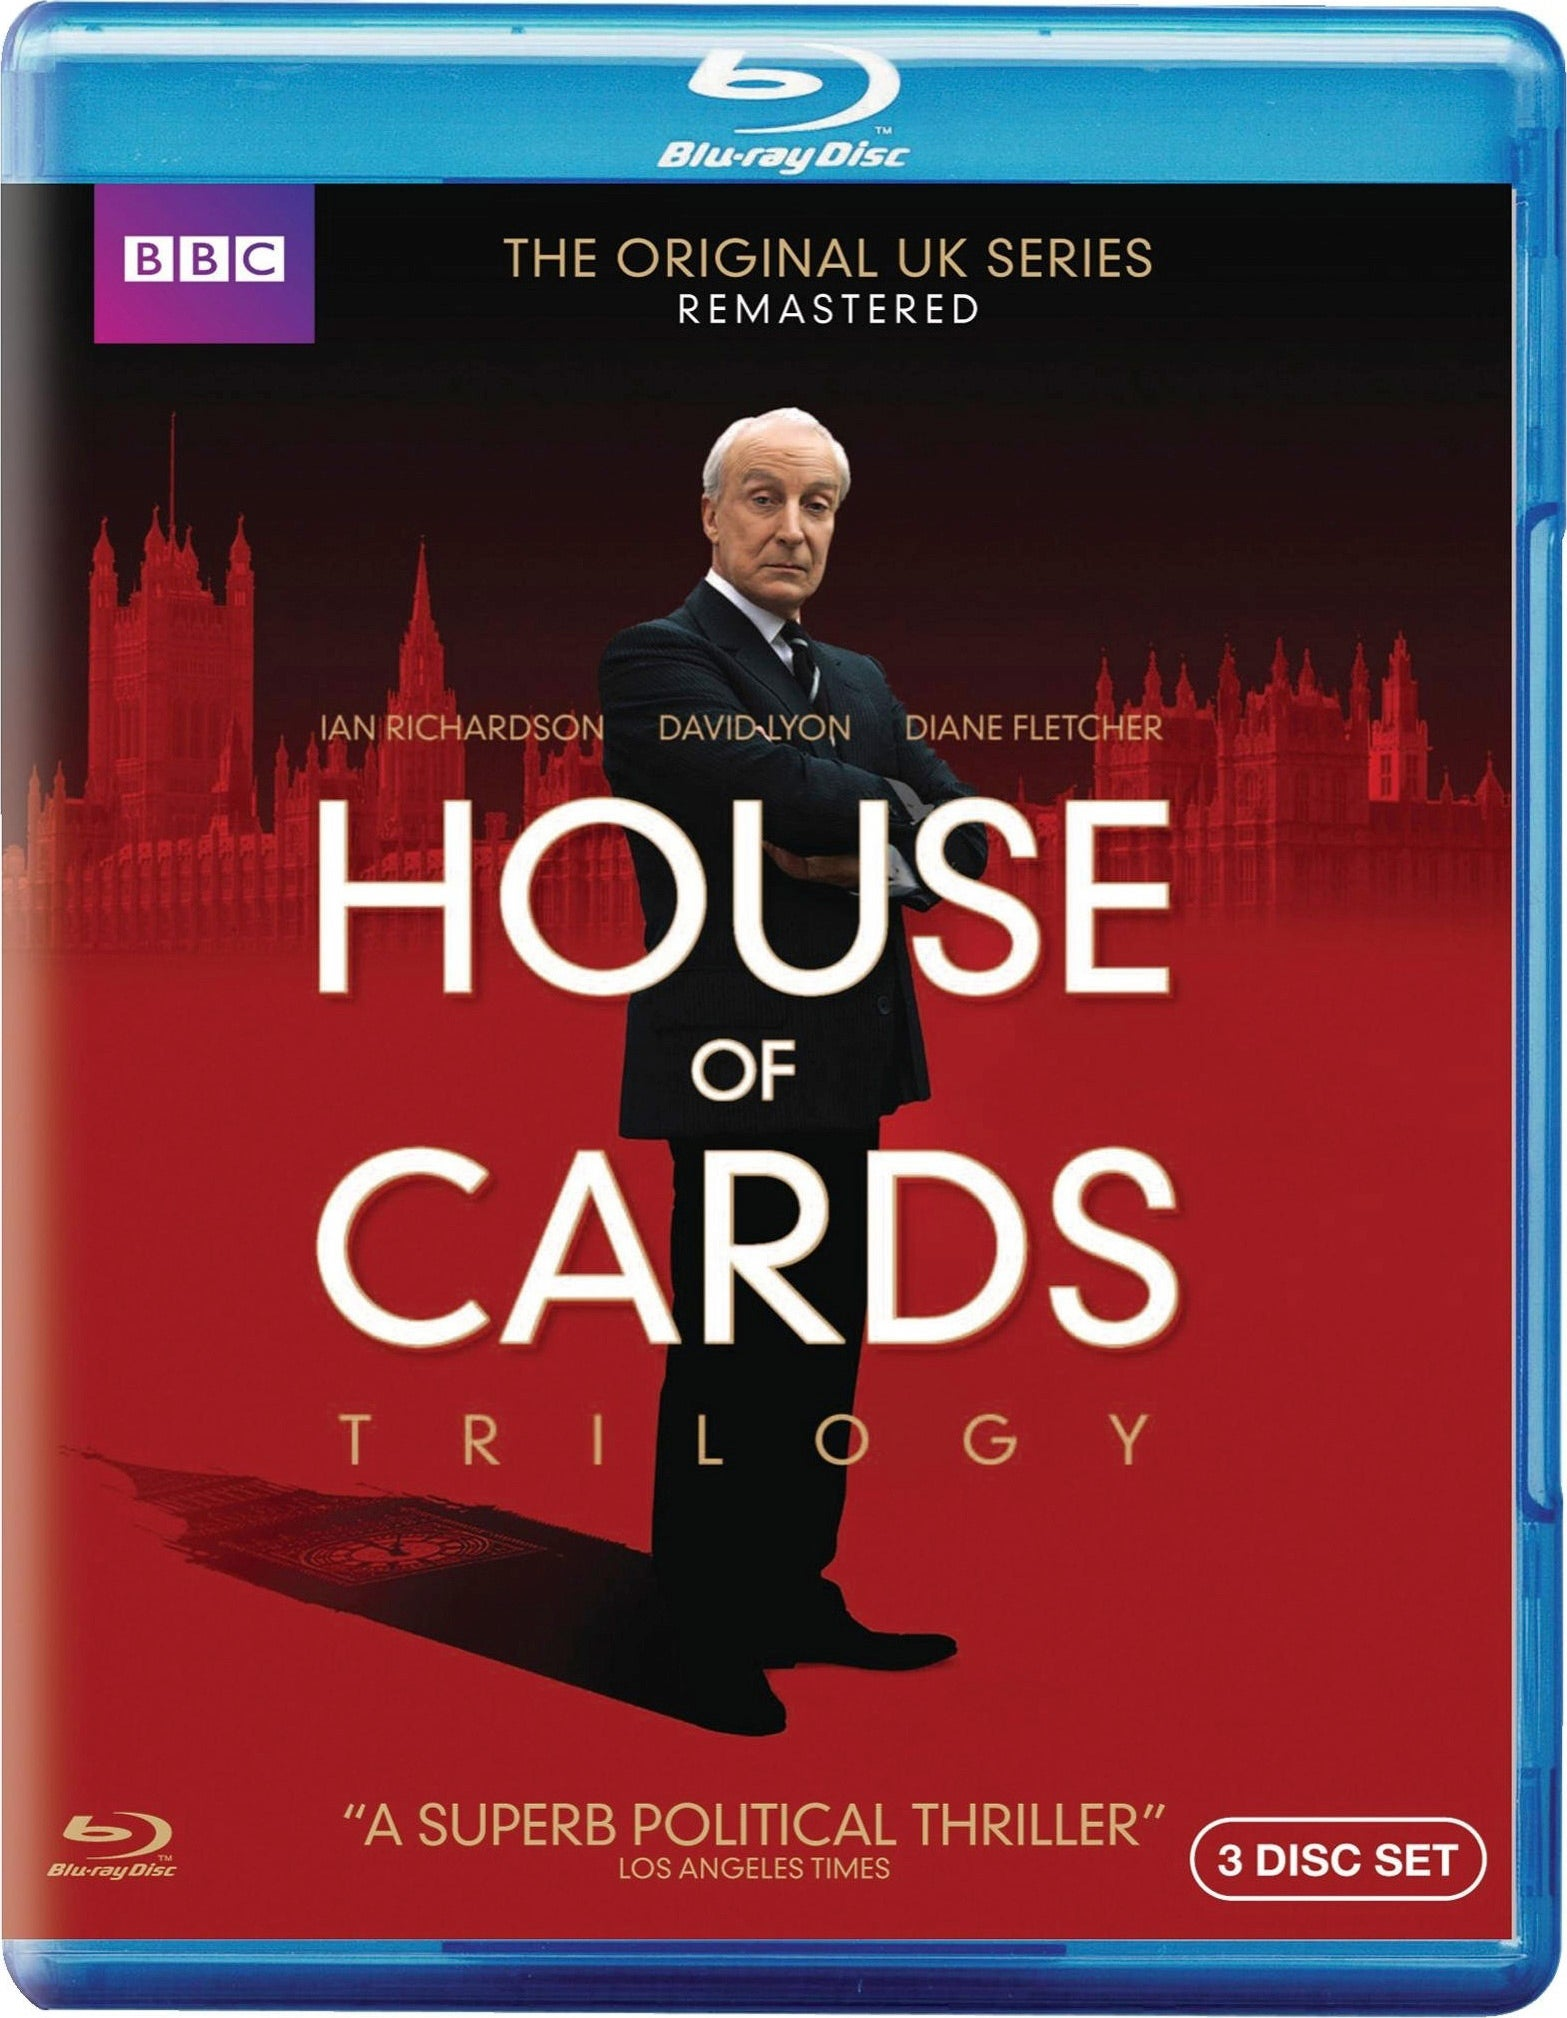 House of Cards Trilogy (Blu-ray Disc)